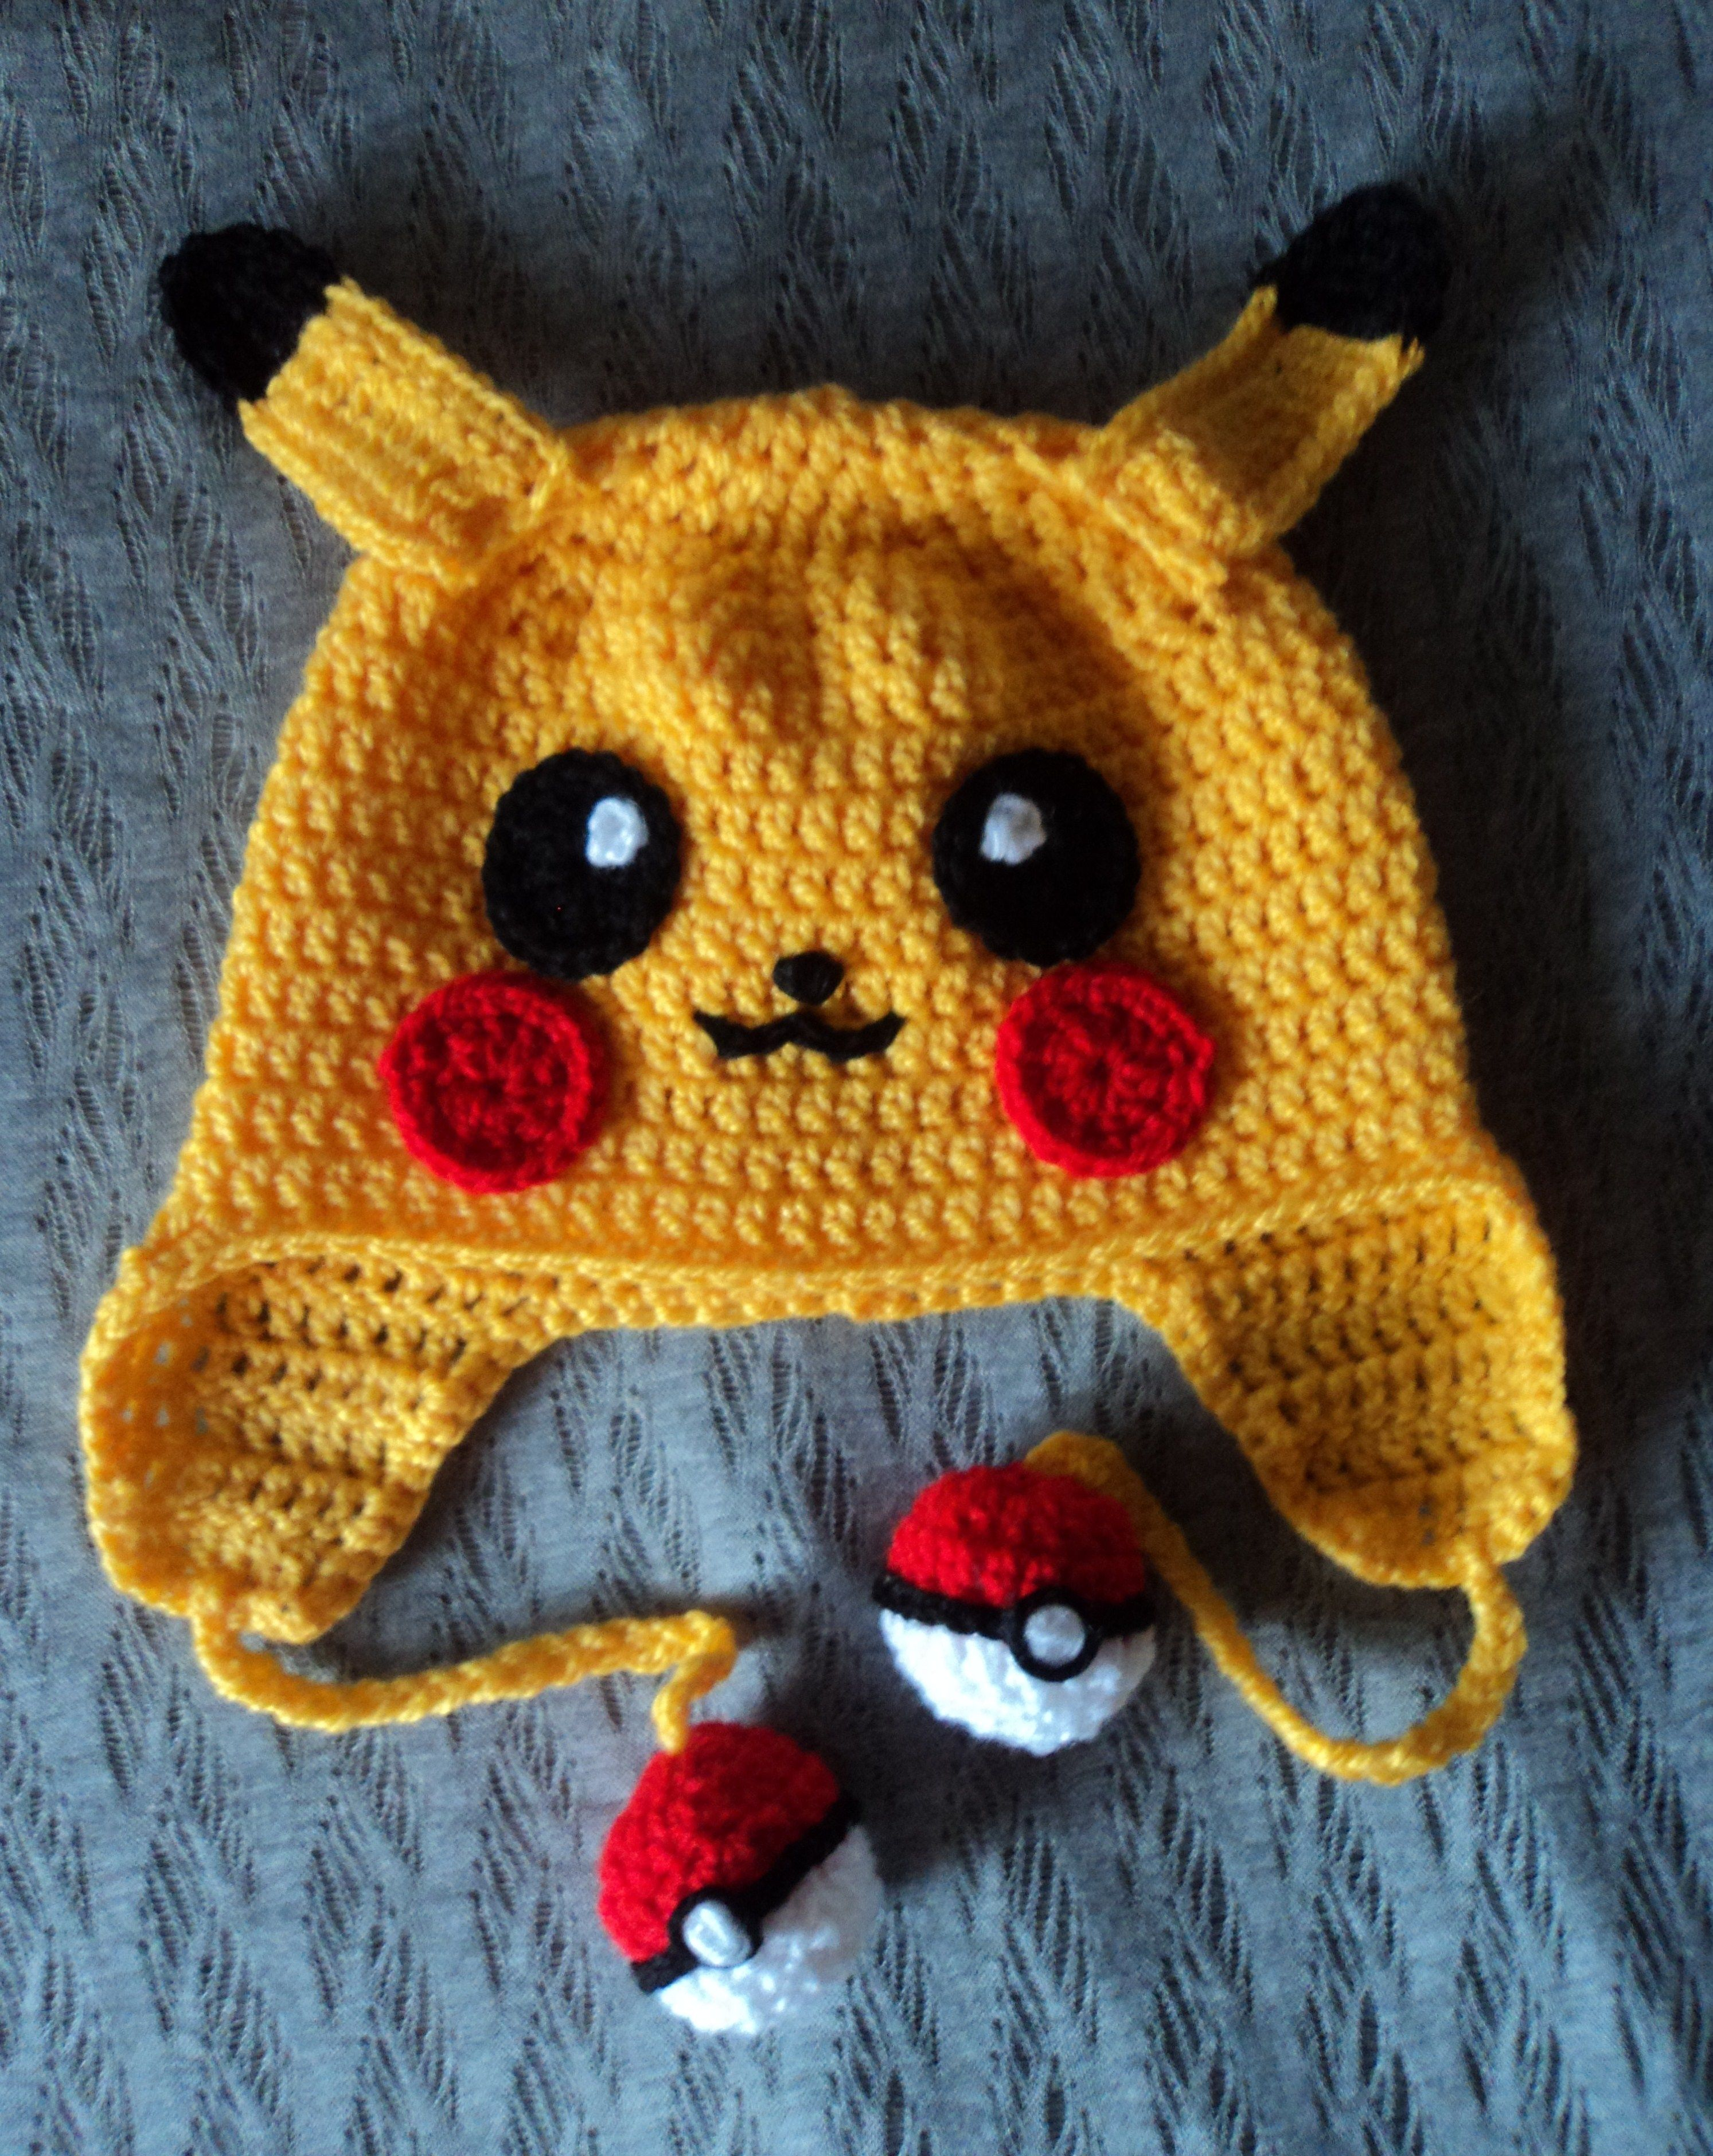 pikachu crochet! Gosh! How I wish I could crochet 557846bf86b